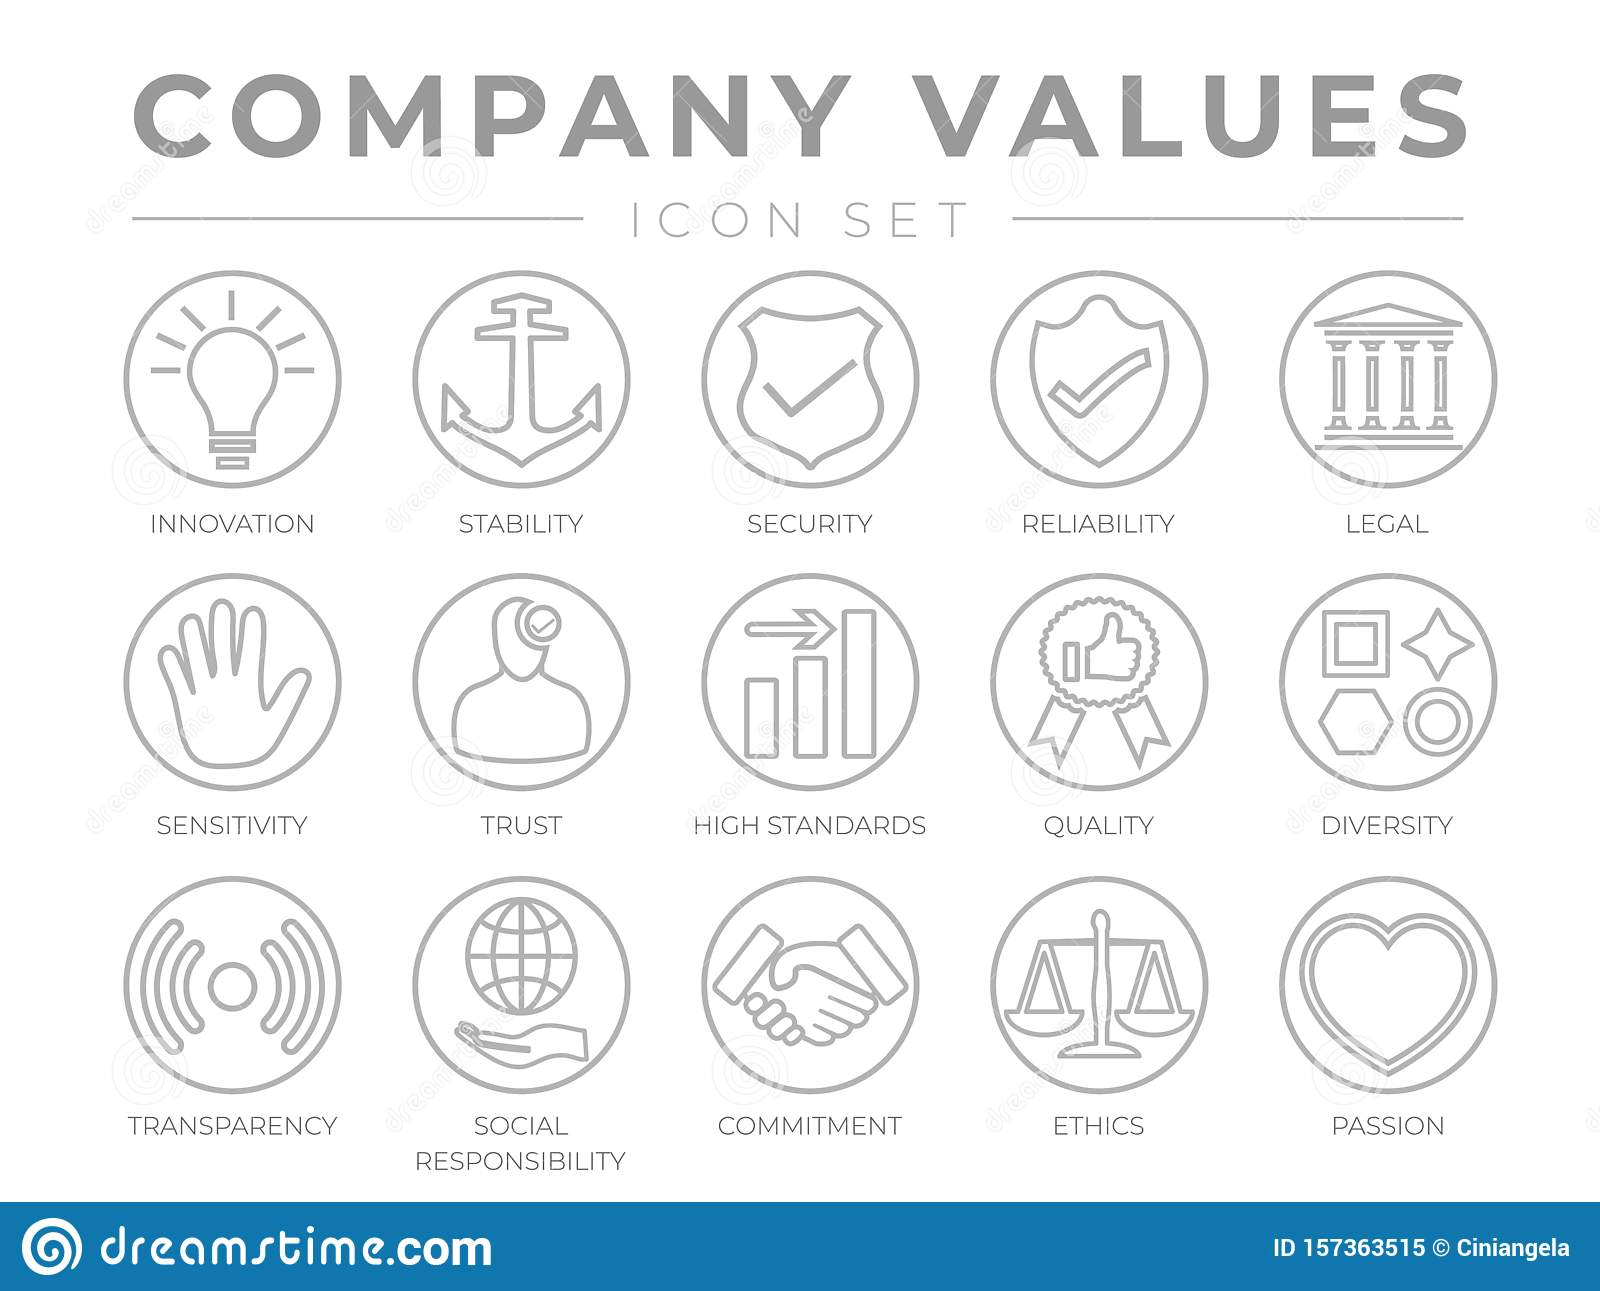 Business Company Core Values Round Outline Icon Set. Innovation, Stability, Security, Reliability, Legal and Sensitivity, Trust,